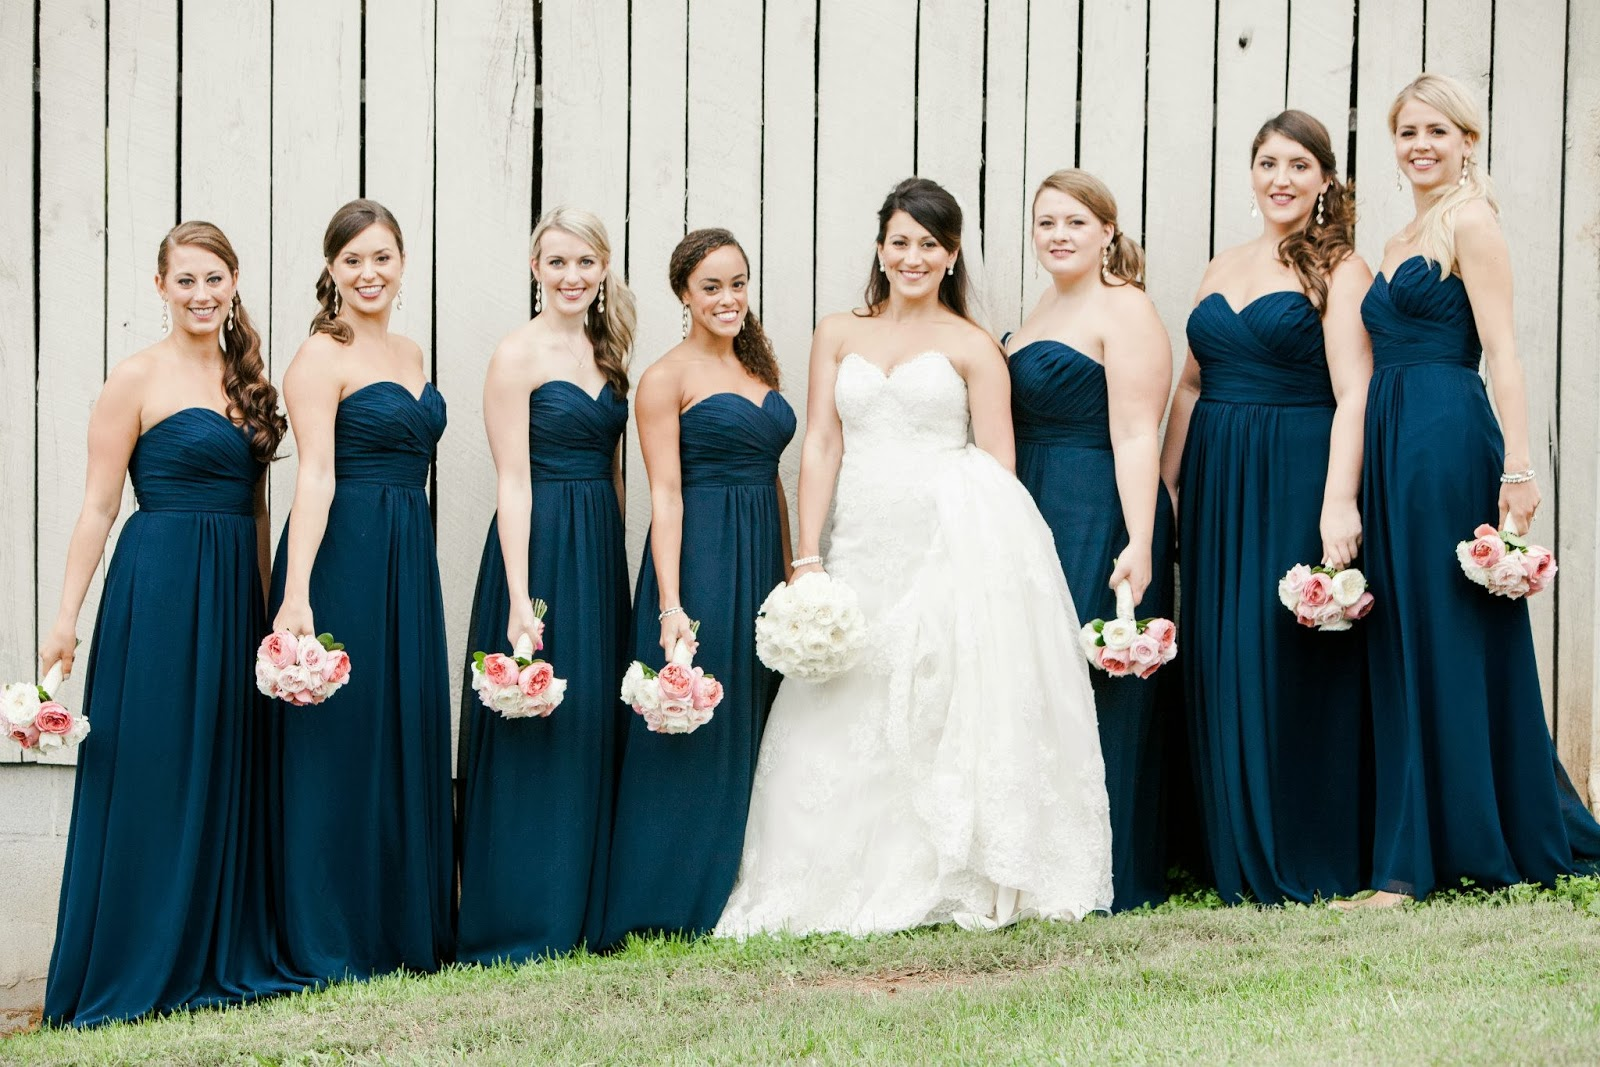 New cheap wedding dresses navy bridesmaid dresses with green flowers navy bridesmaid dresses with green flowers ombrellifo Gallery